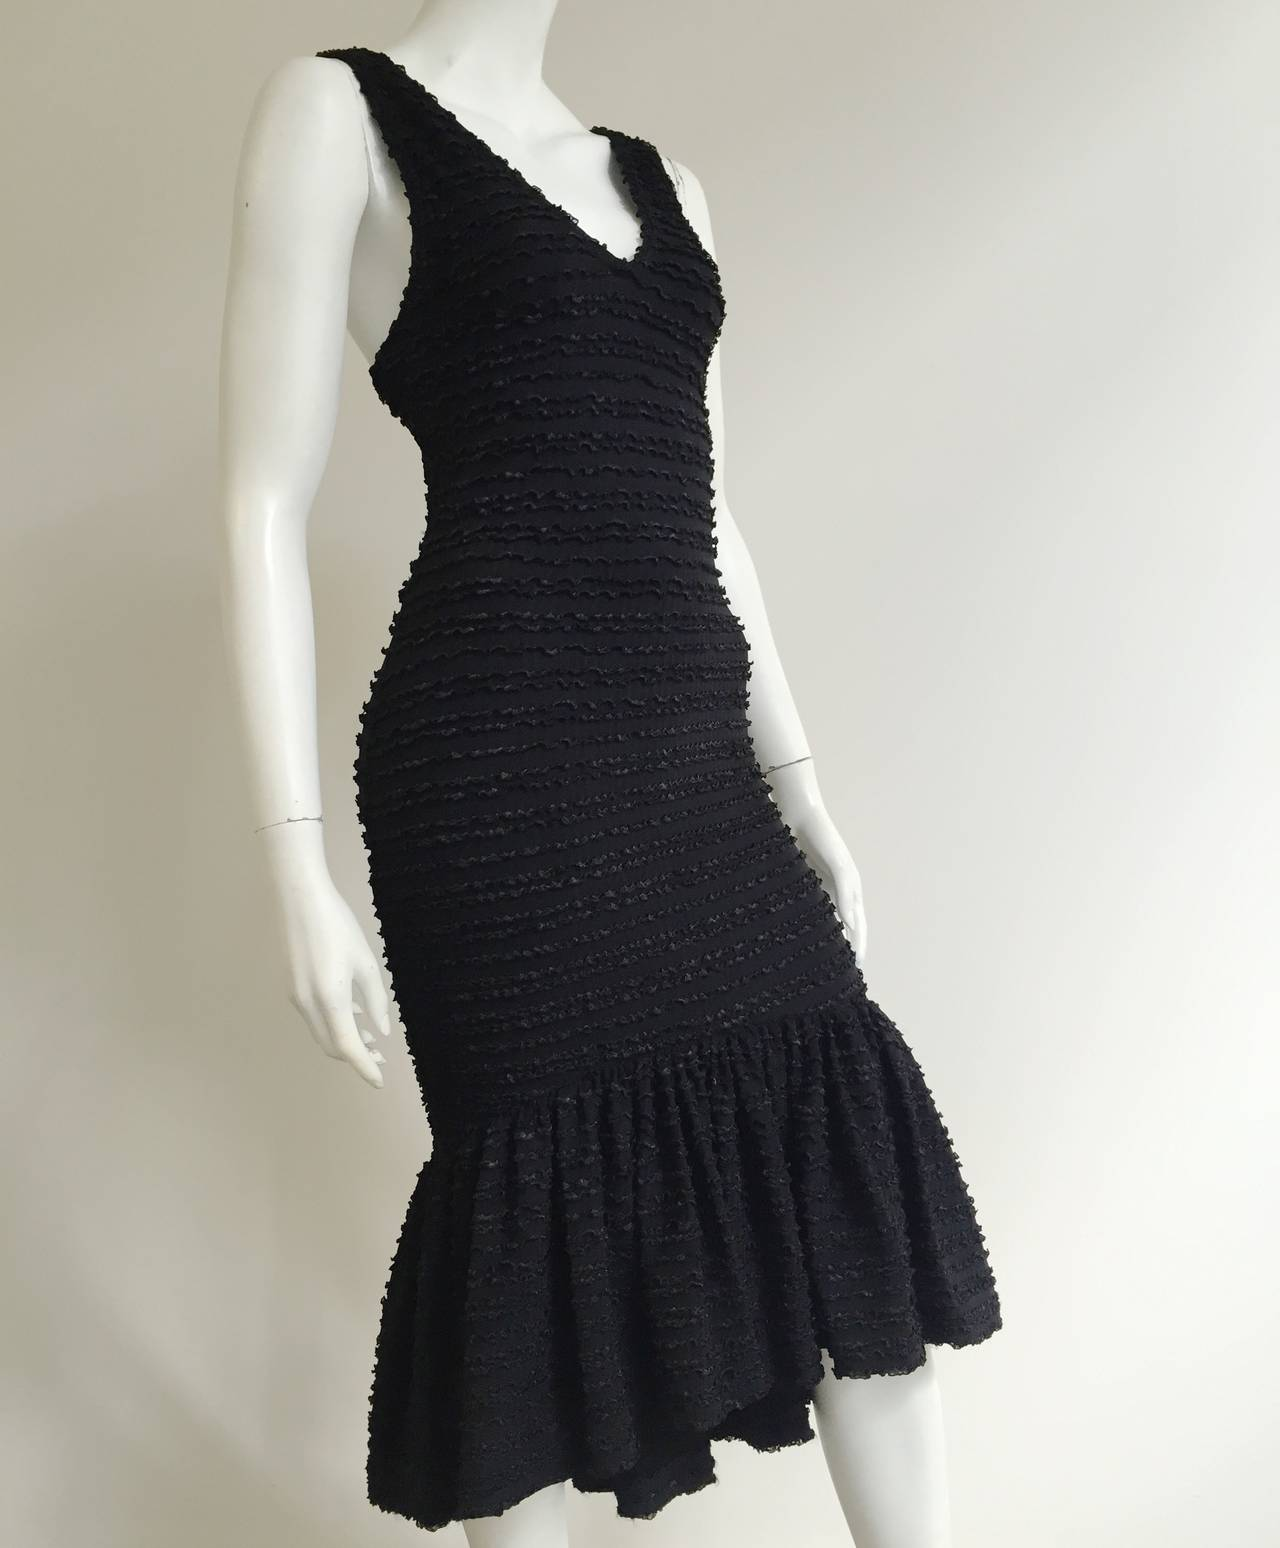 Patrick Kelly Paris 1986 Black Dress Size 4. 7